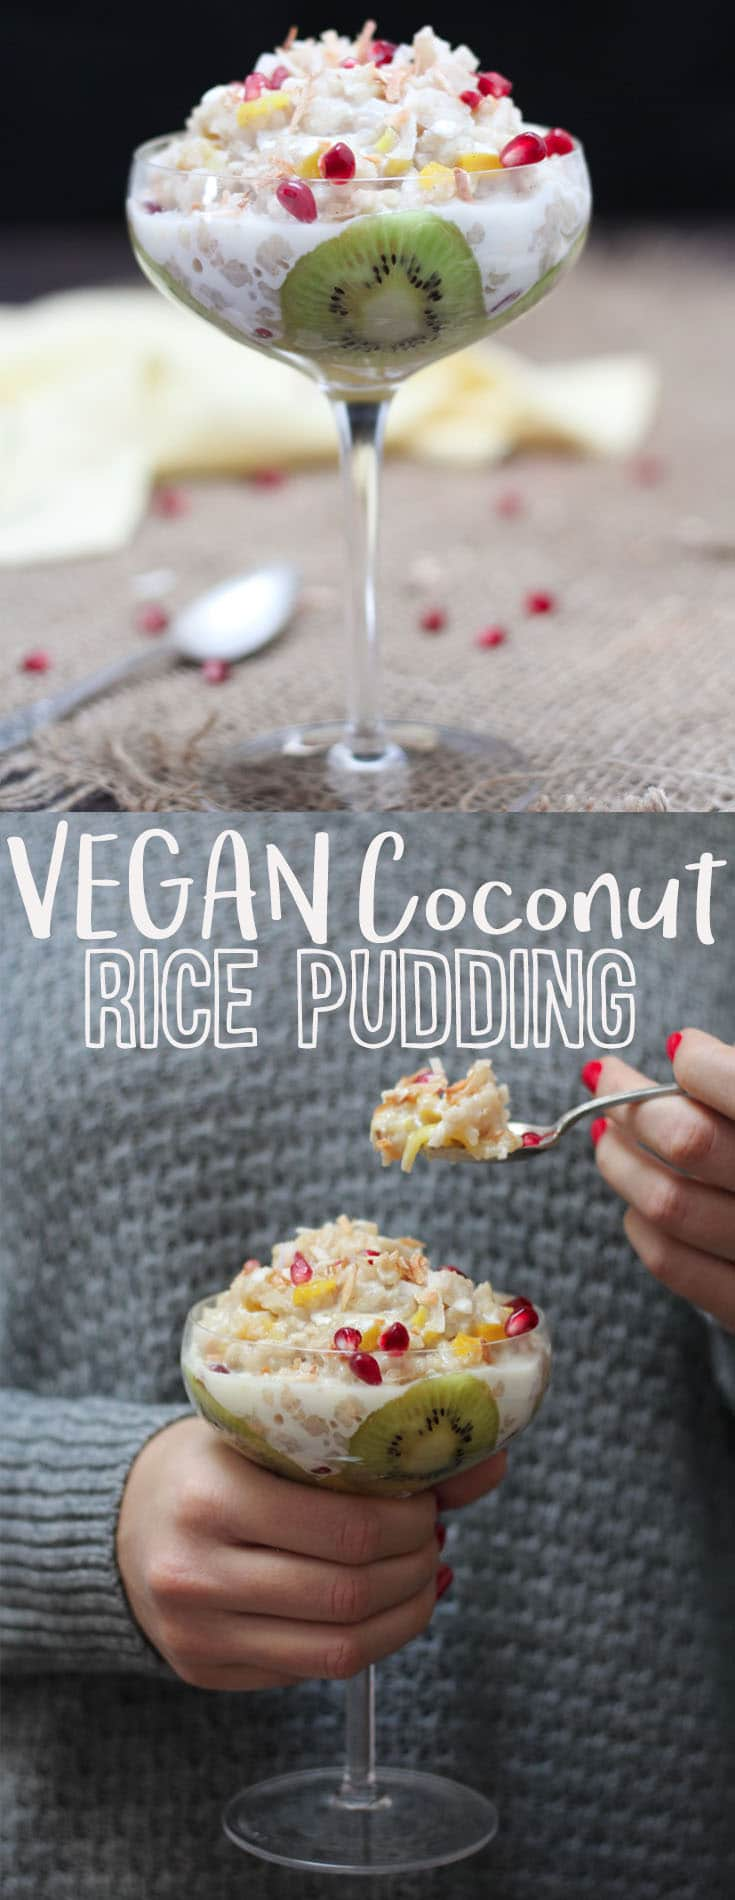 "A pinterest image of rice pudding with text overlay ""Vegan Coconut Rice Pudding.\"""